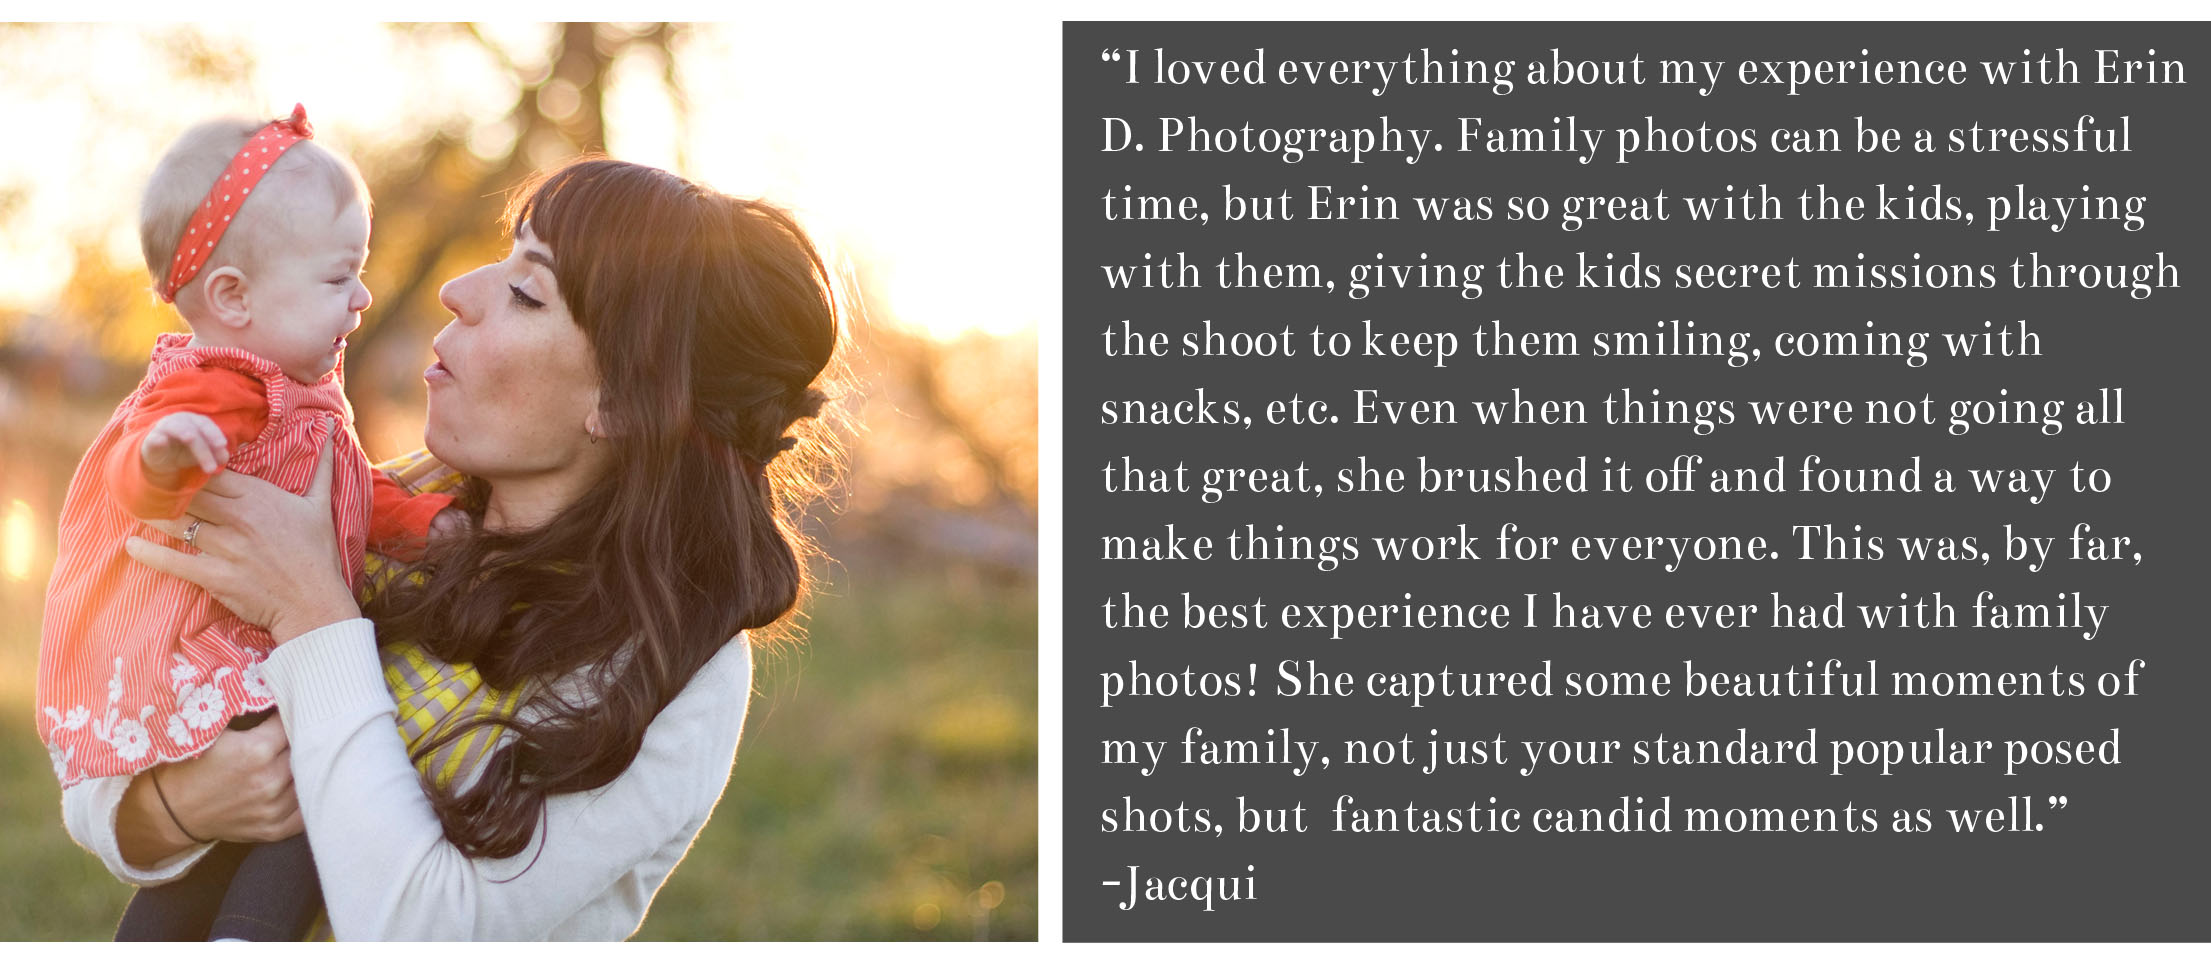 Erin D> Photography | Jacqui Review